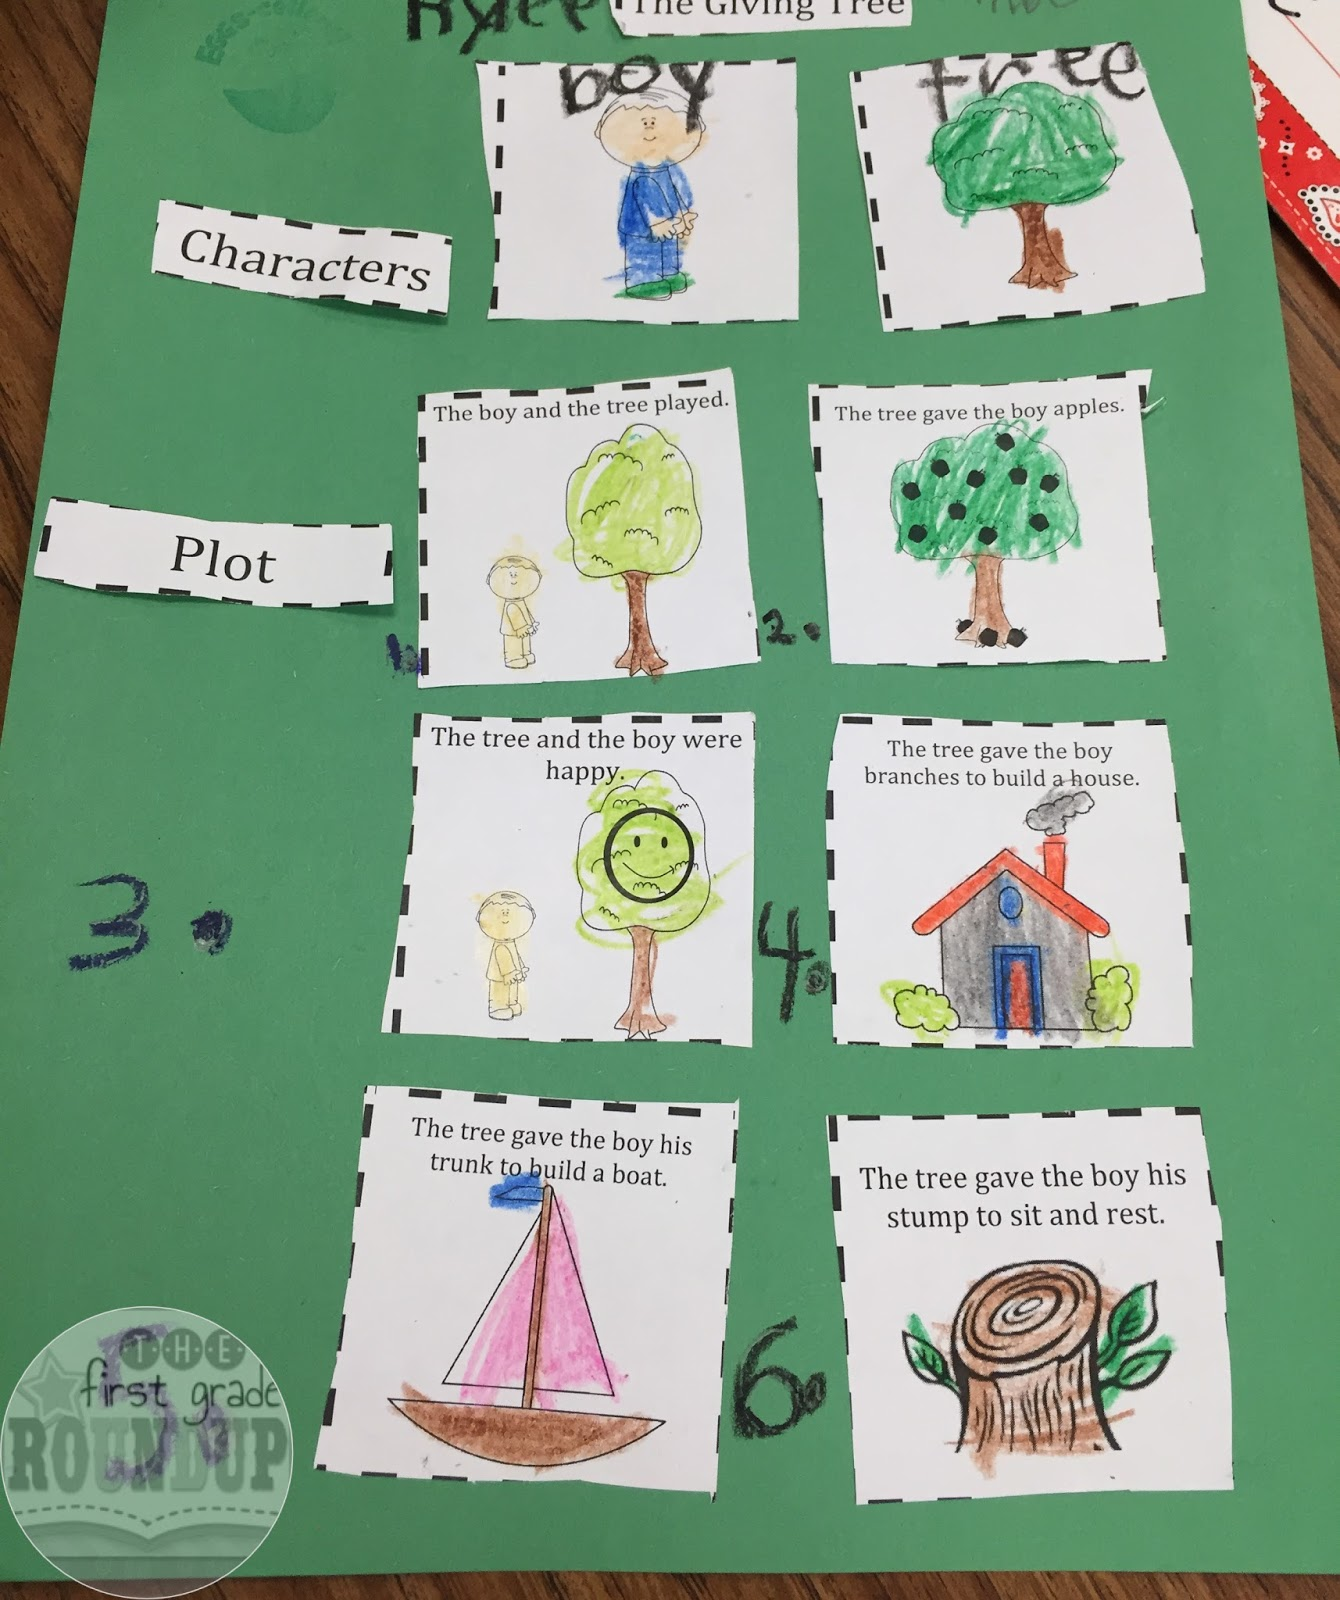 Worksheets The Giving Tree Worksheets the giving tree firstgraderoundup we reread and focused on whether or not story was a fable used our anchor chart to record saw the